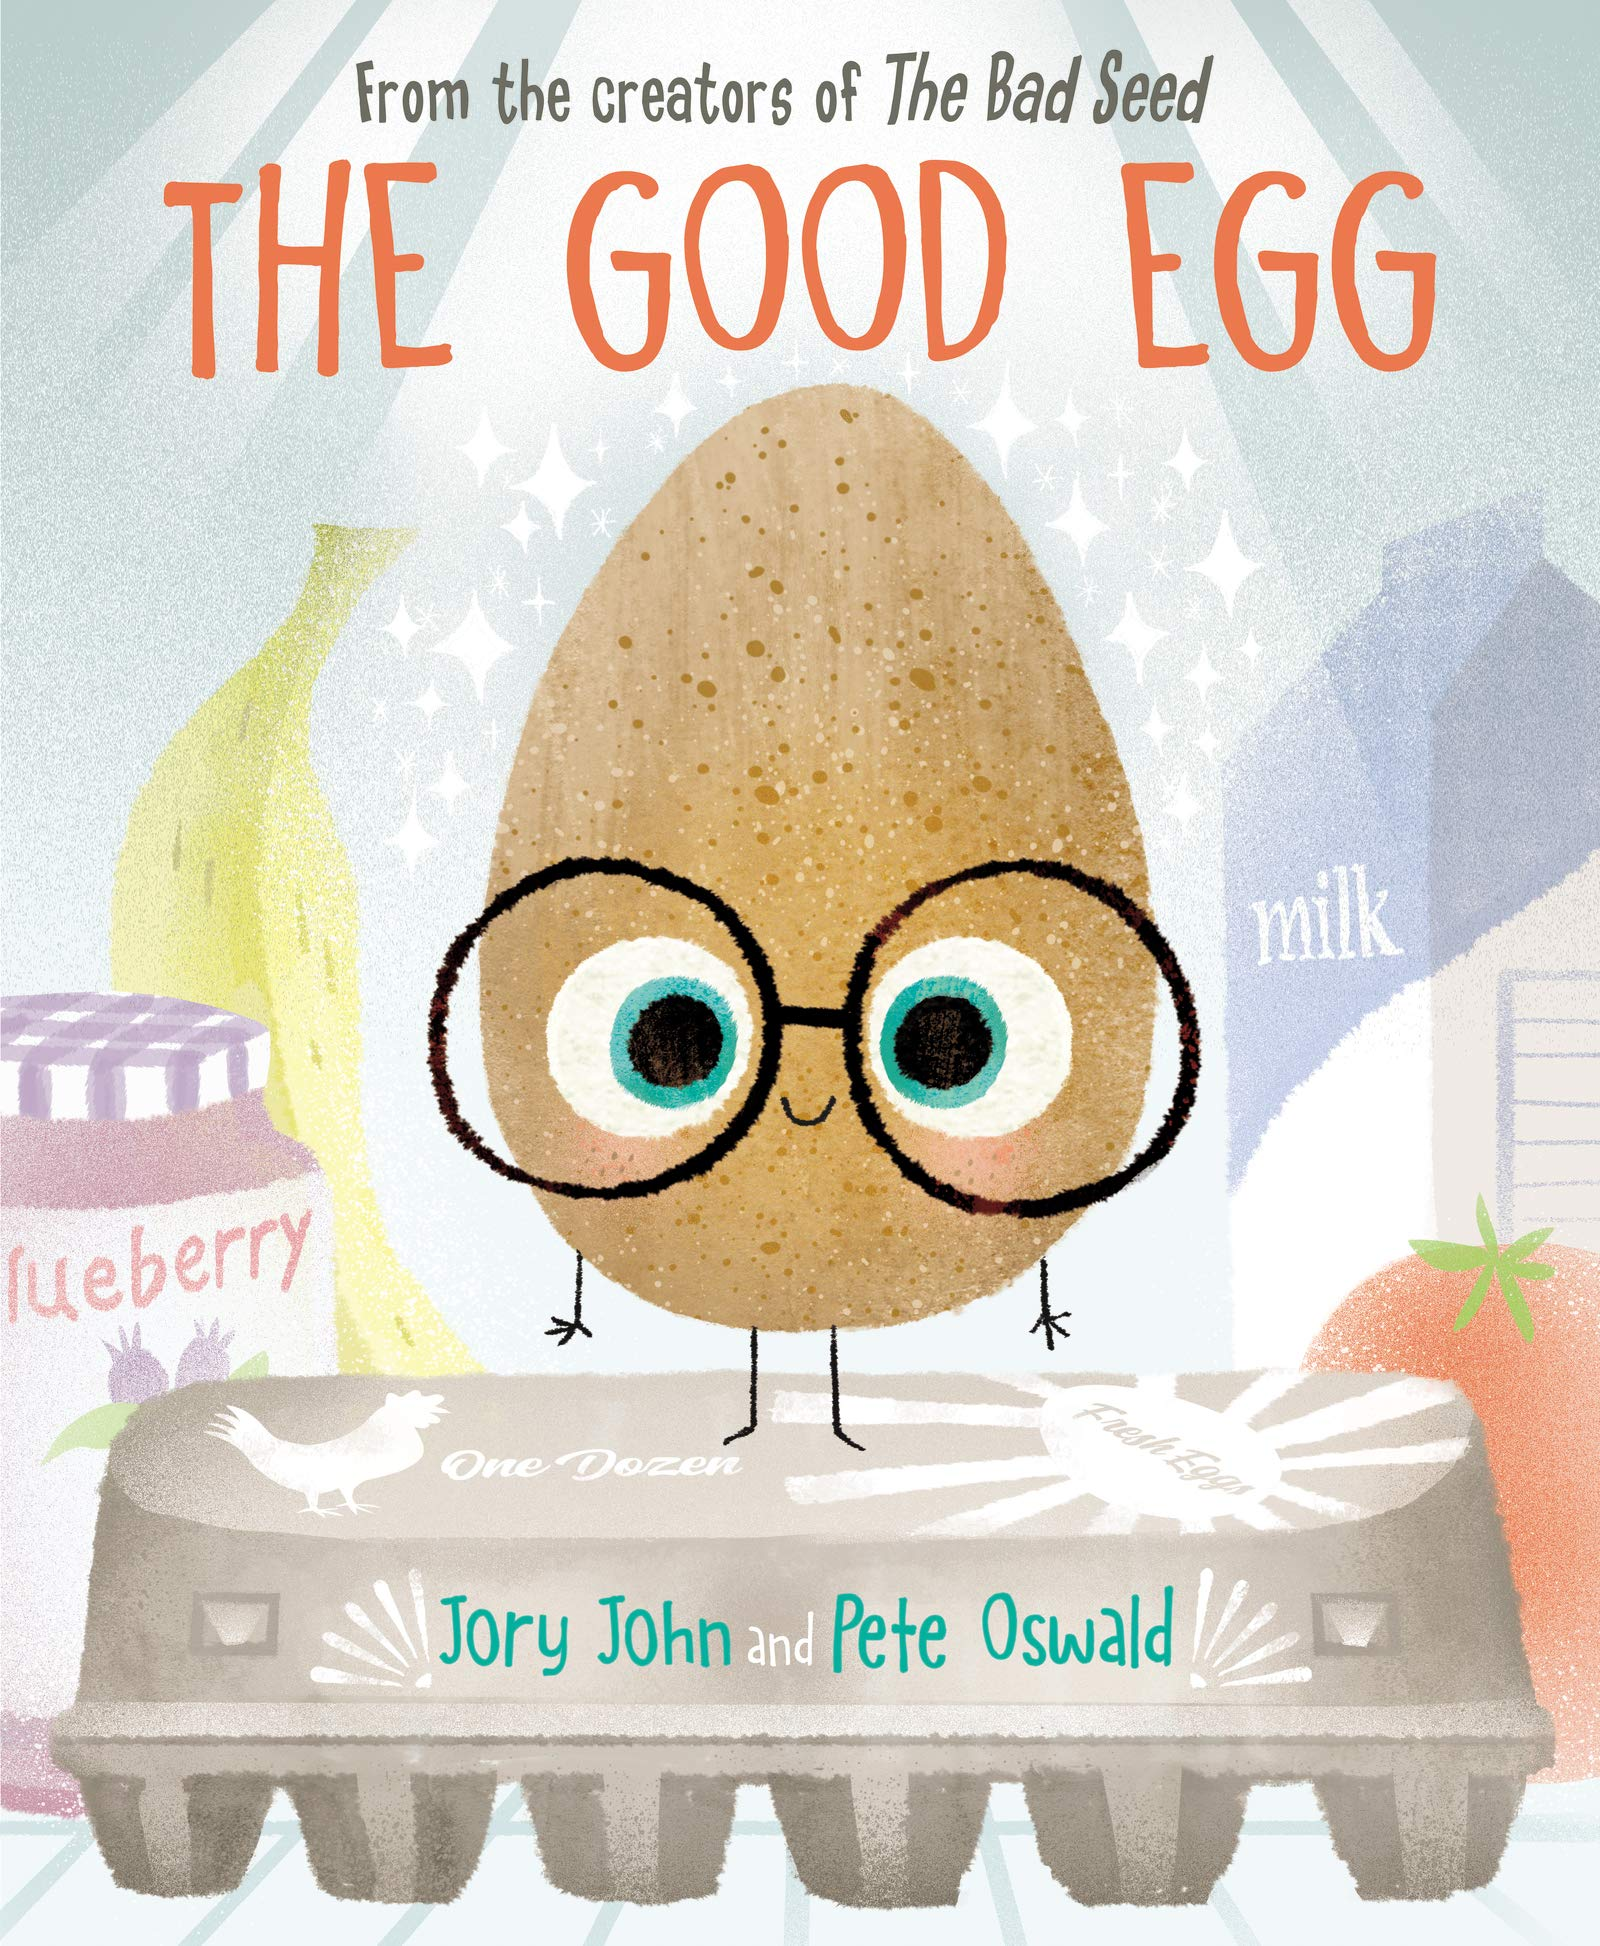 Good Egg Jory John product image